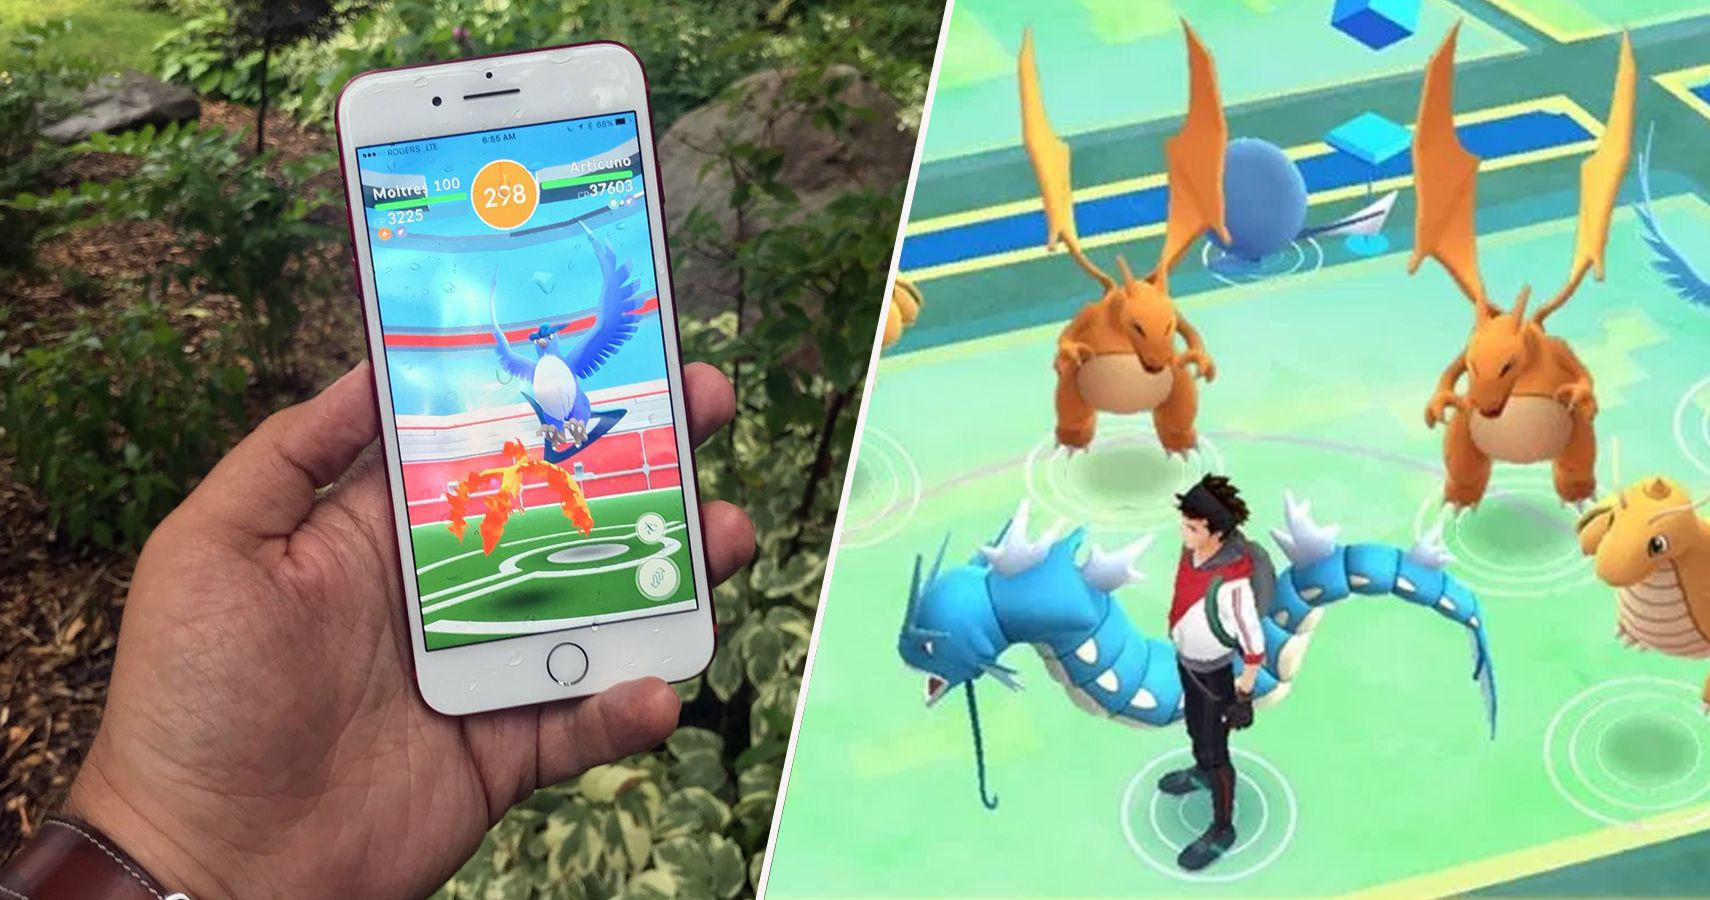 10 Pokémon Go Hidden Tricks That Still Work And 10 That Got Banned